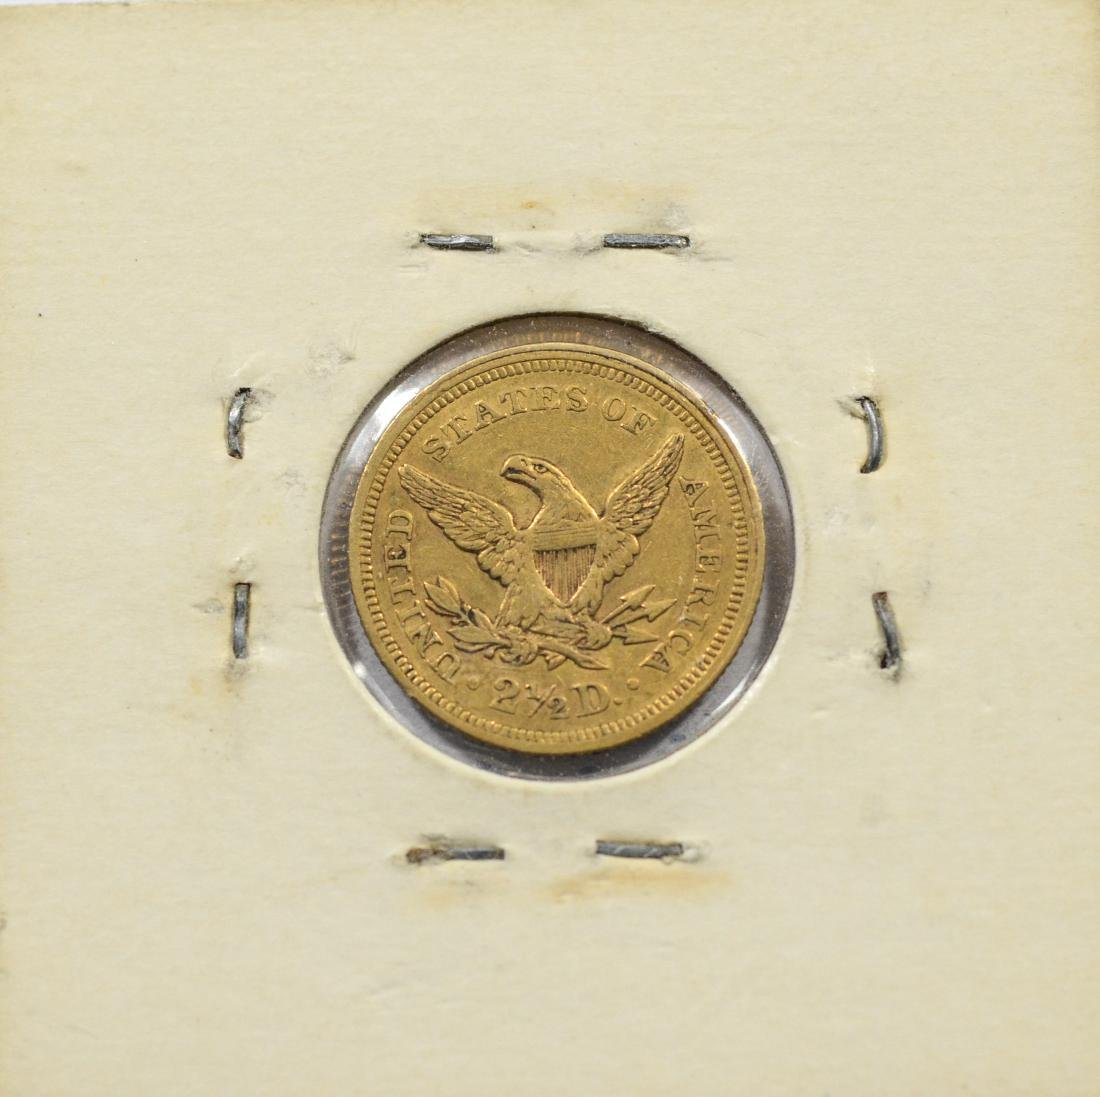 1853 $ 2 1/2 Liberty gold coin, VF - 2